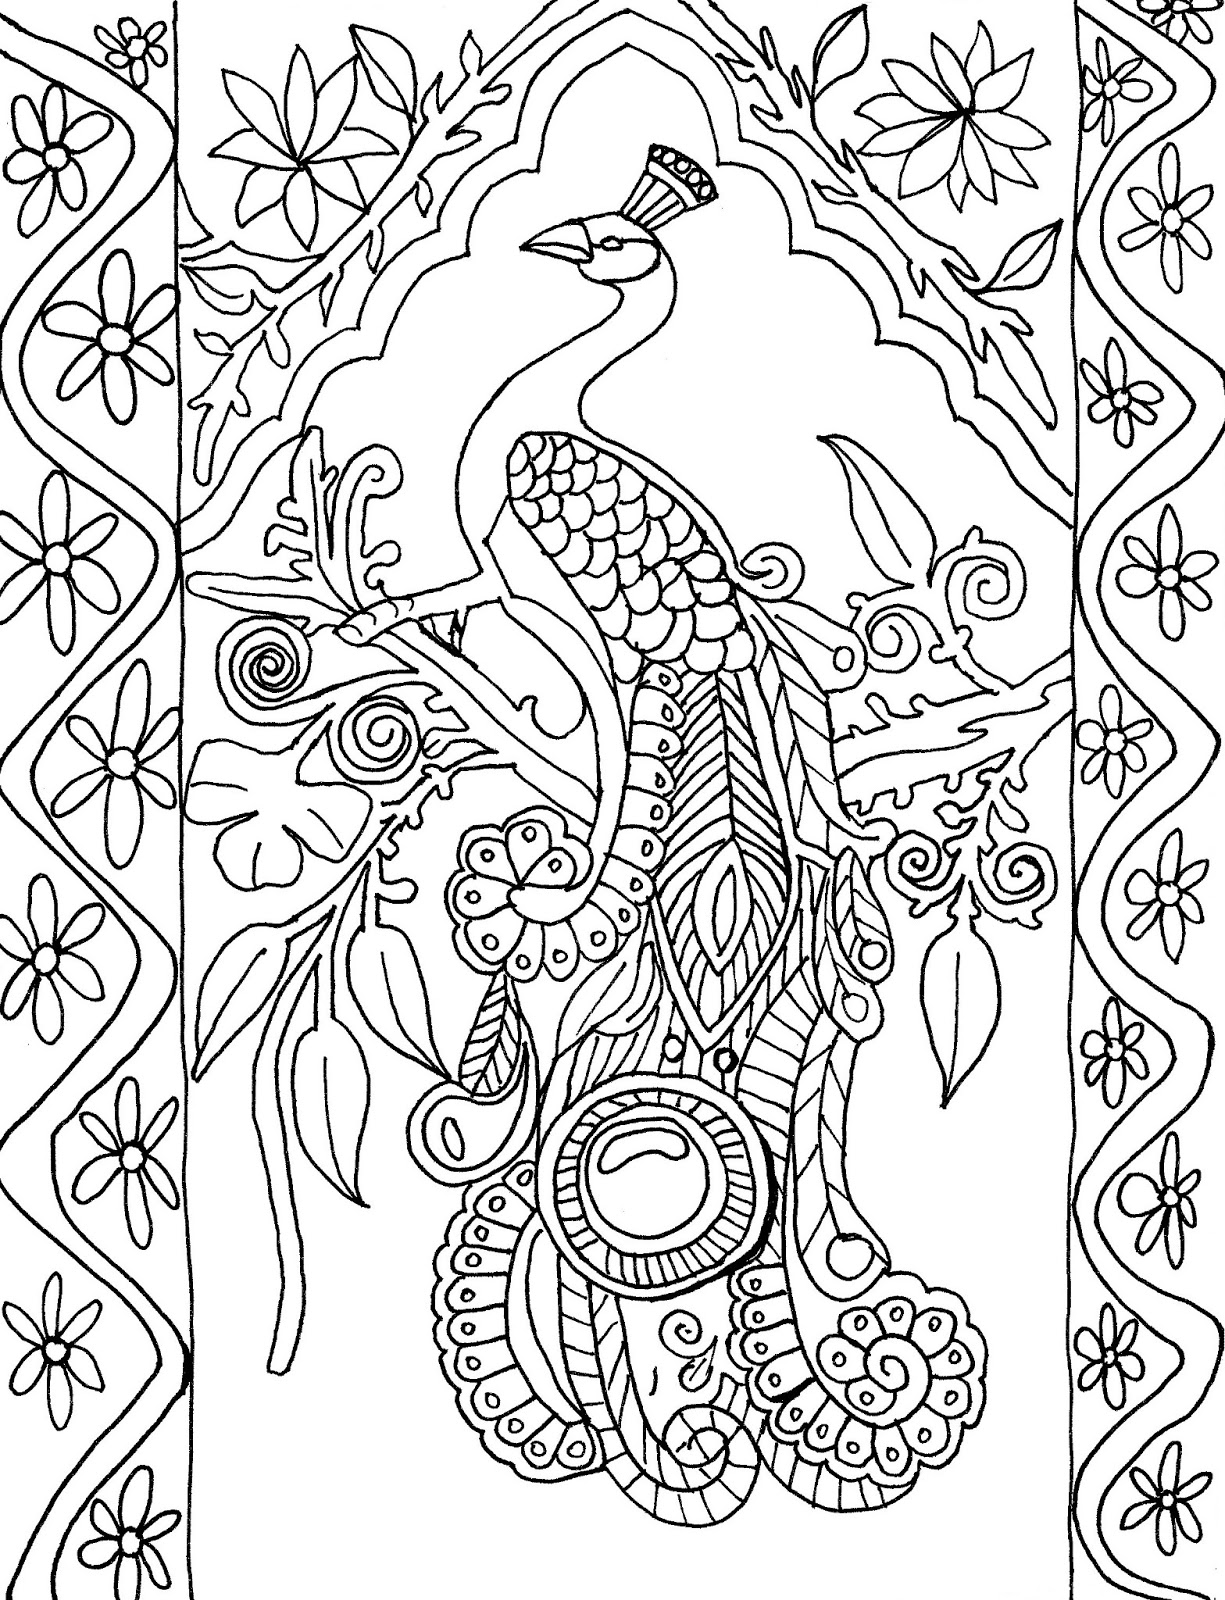 1225x1600 adult coloring pages peacock colouring to pretty print draw